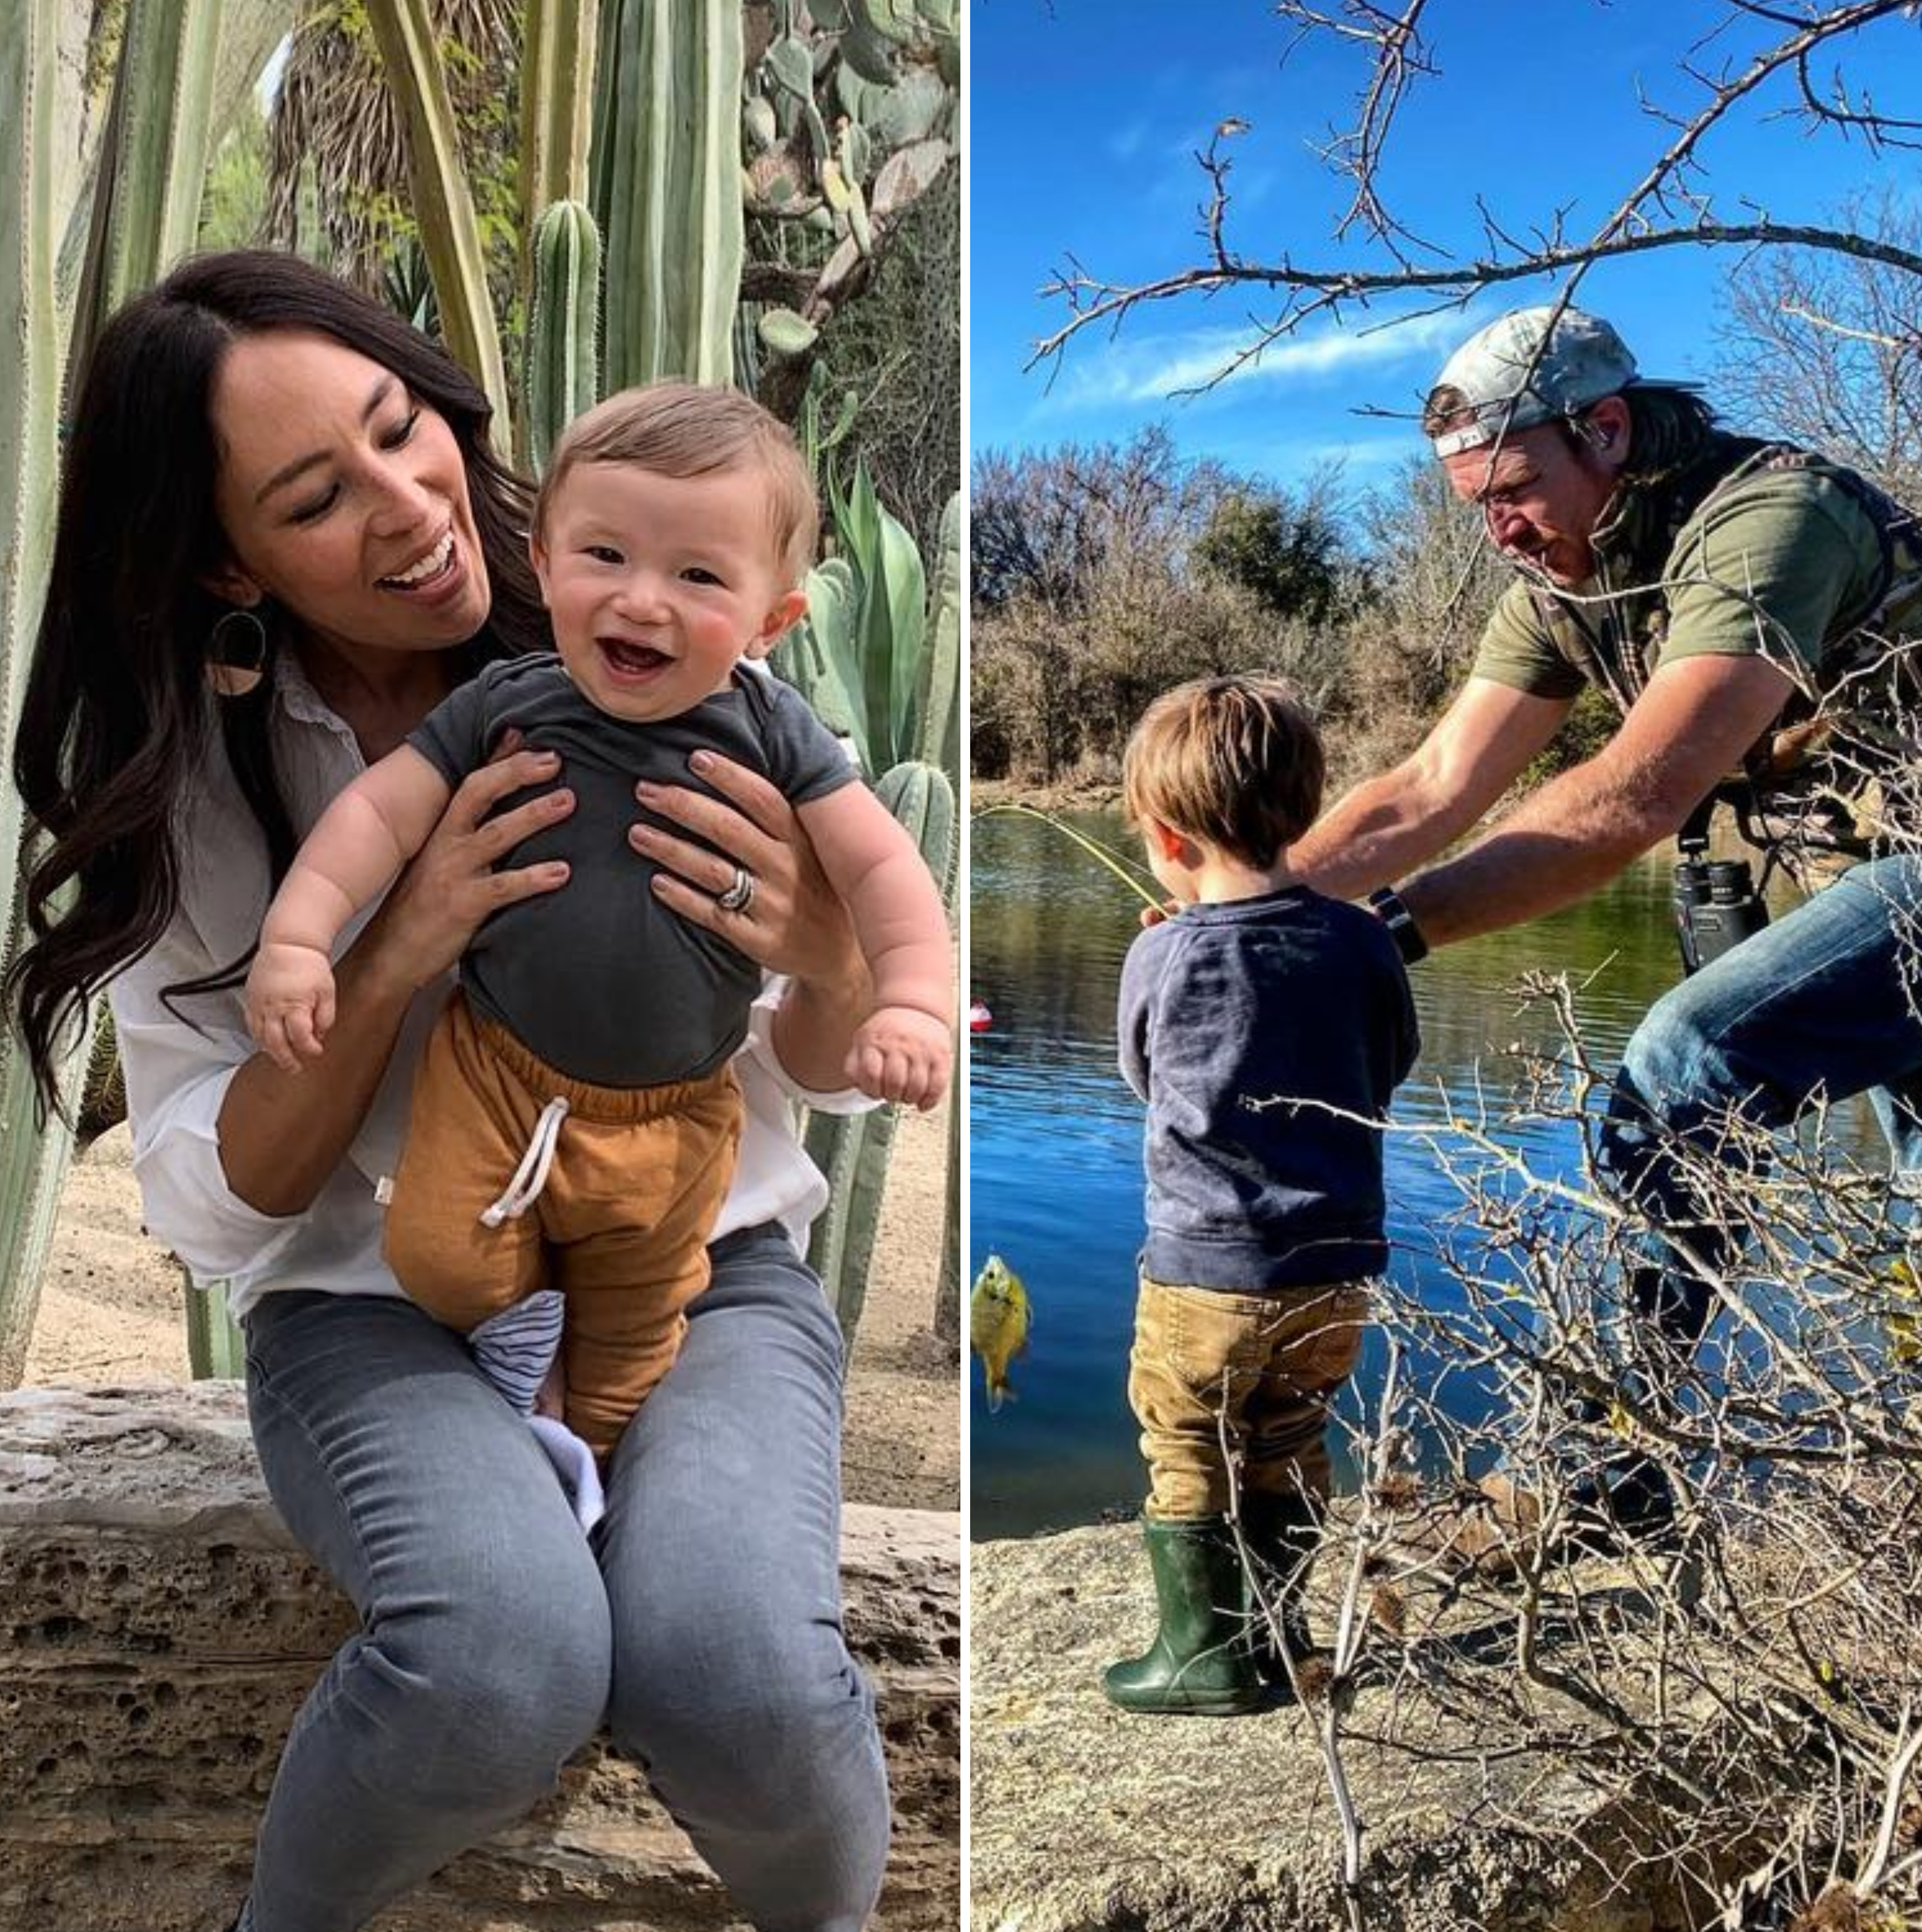 """Chip praised his wife for being the best mom while sharing a snap of Joanna and Crew snuggling on the couch. """"This woman does a lot of things well! But I will say, the way she loves our kids is absolutely her crowning achievement,"""" he gushed."""